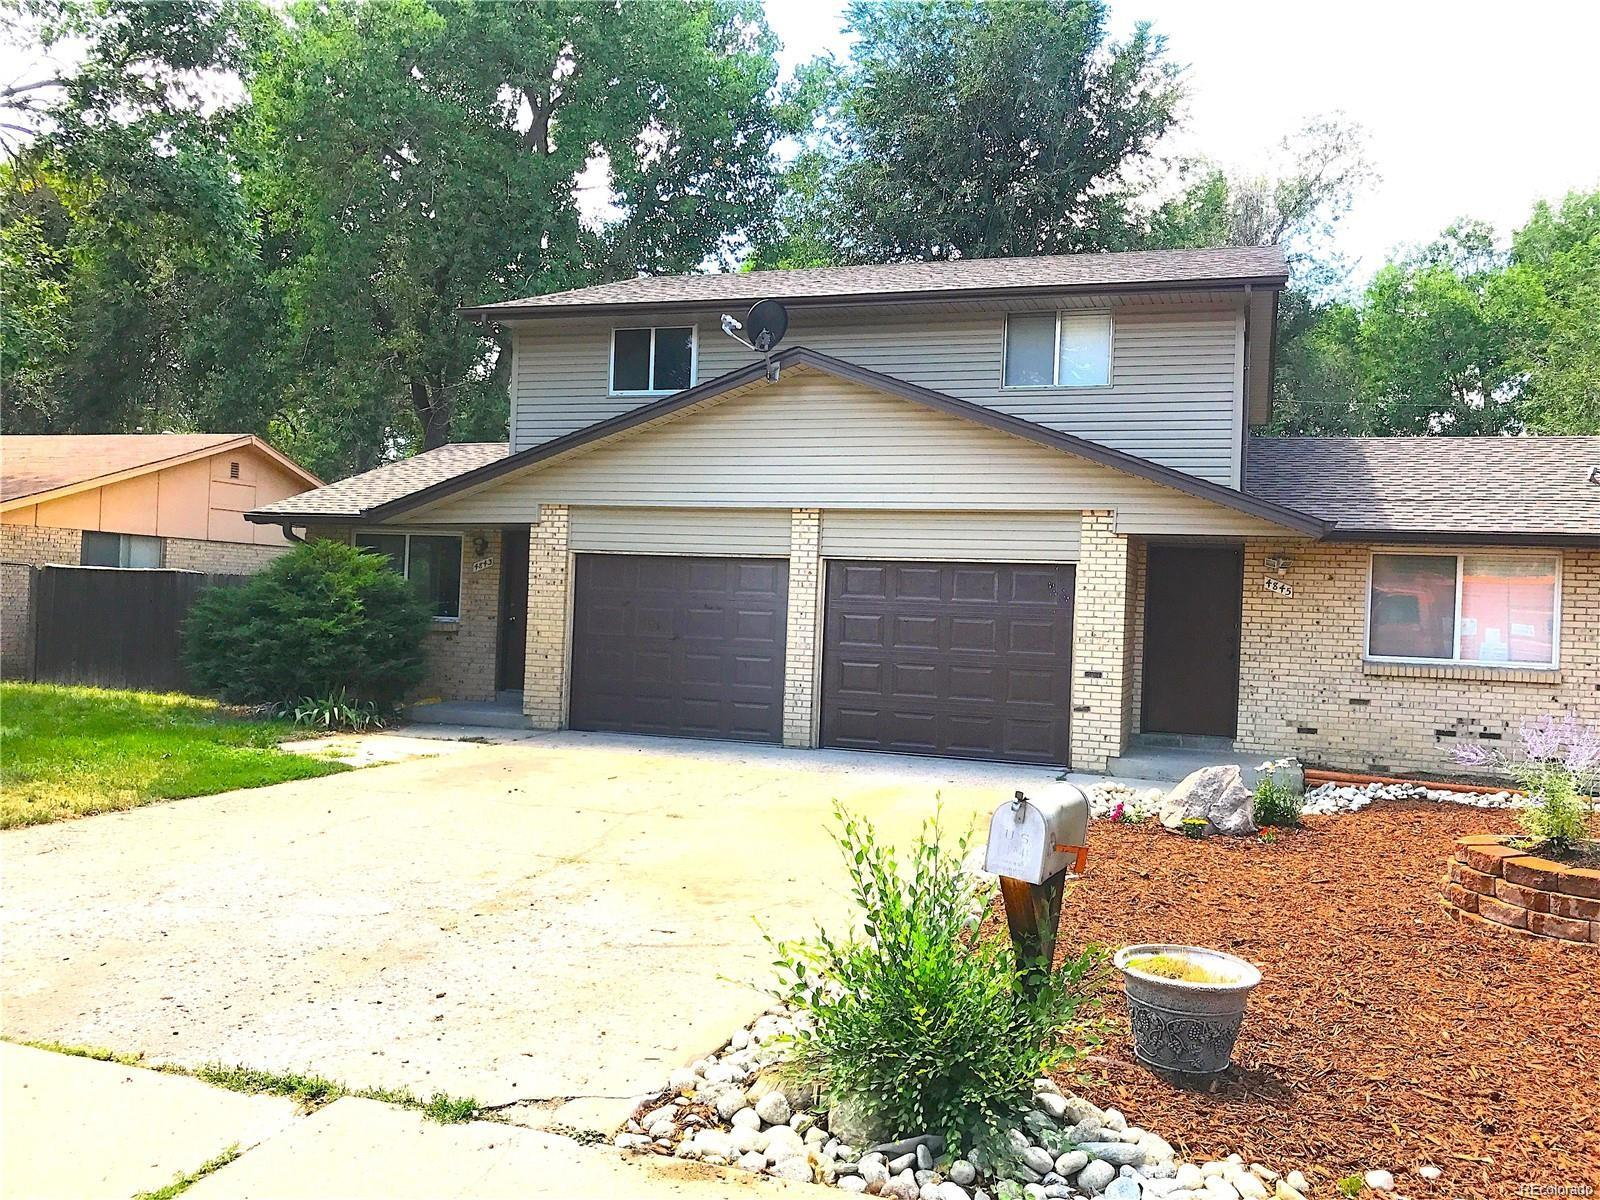 4843 Flower Court, Arvada, CO 80002 - Arvada, CO real estate listing